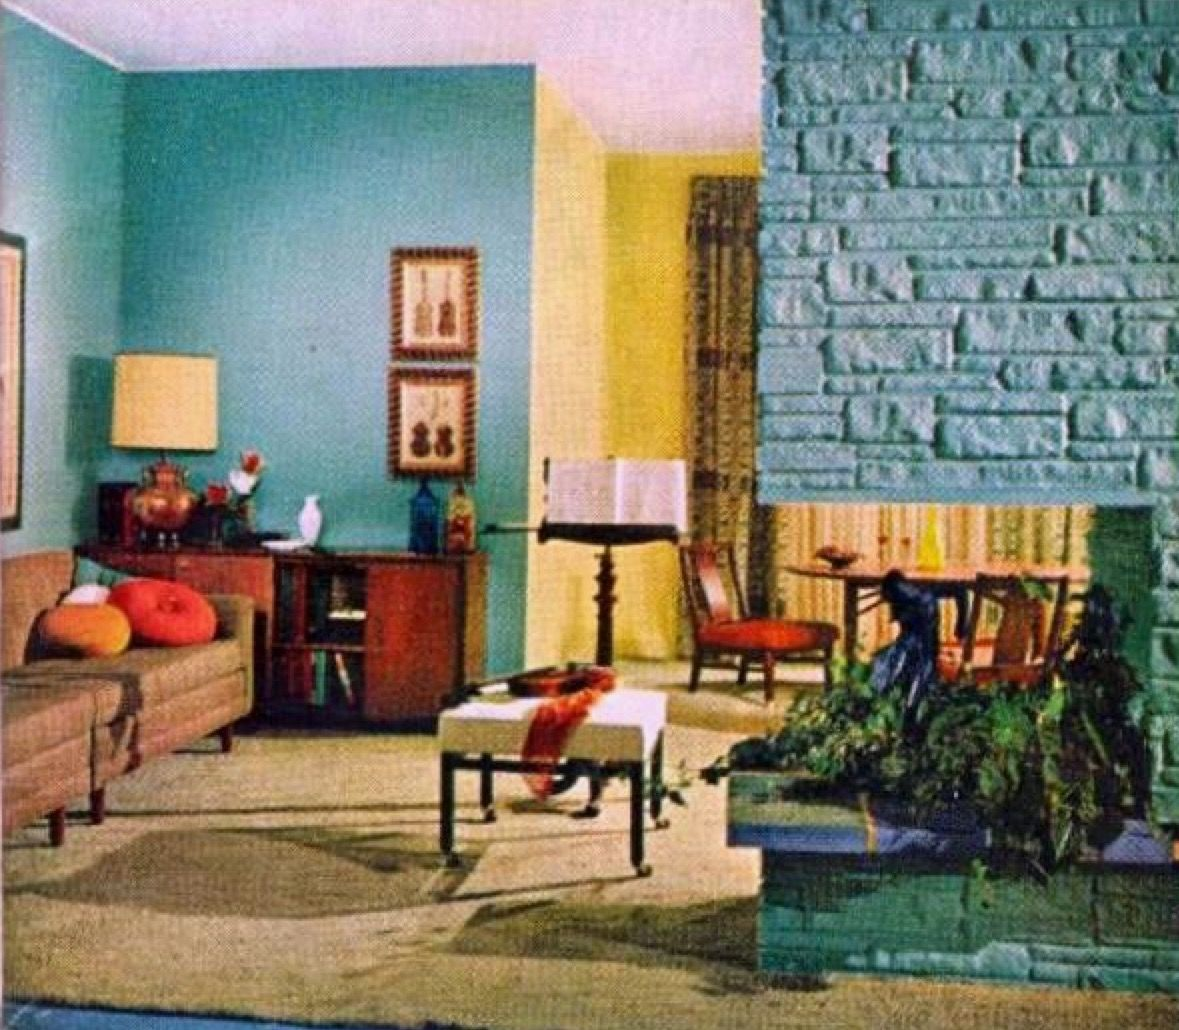 1950s interior design. Room · 1950s InteriorVintage Interior DesignVintage Design